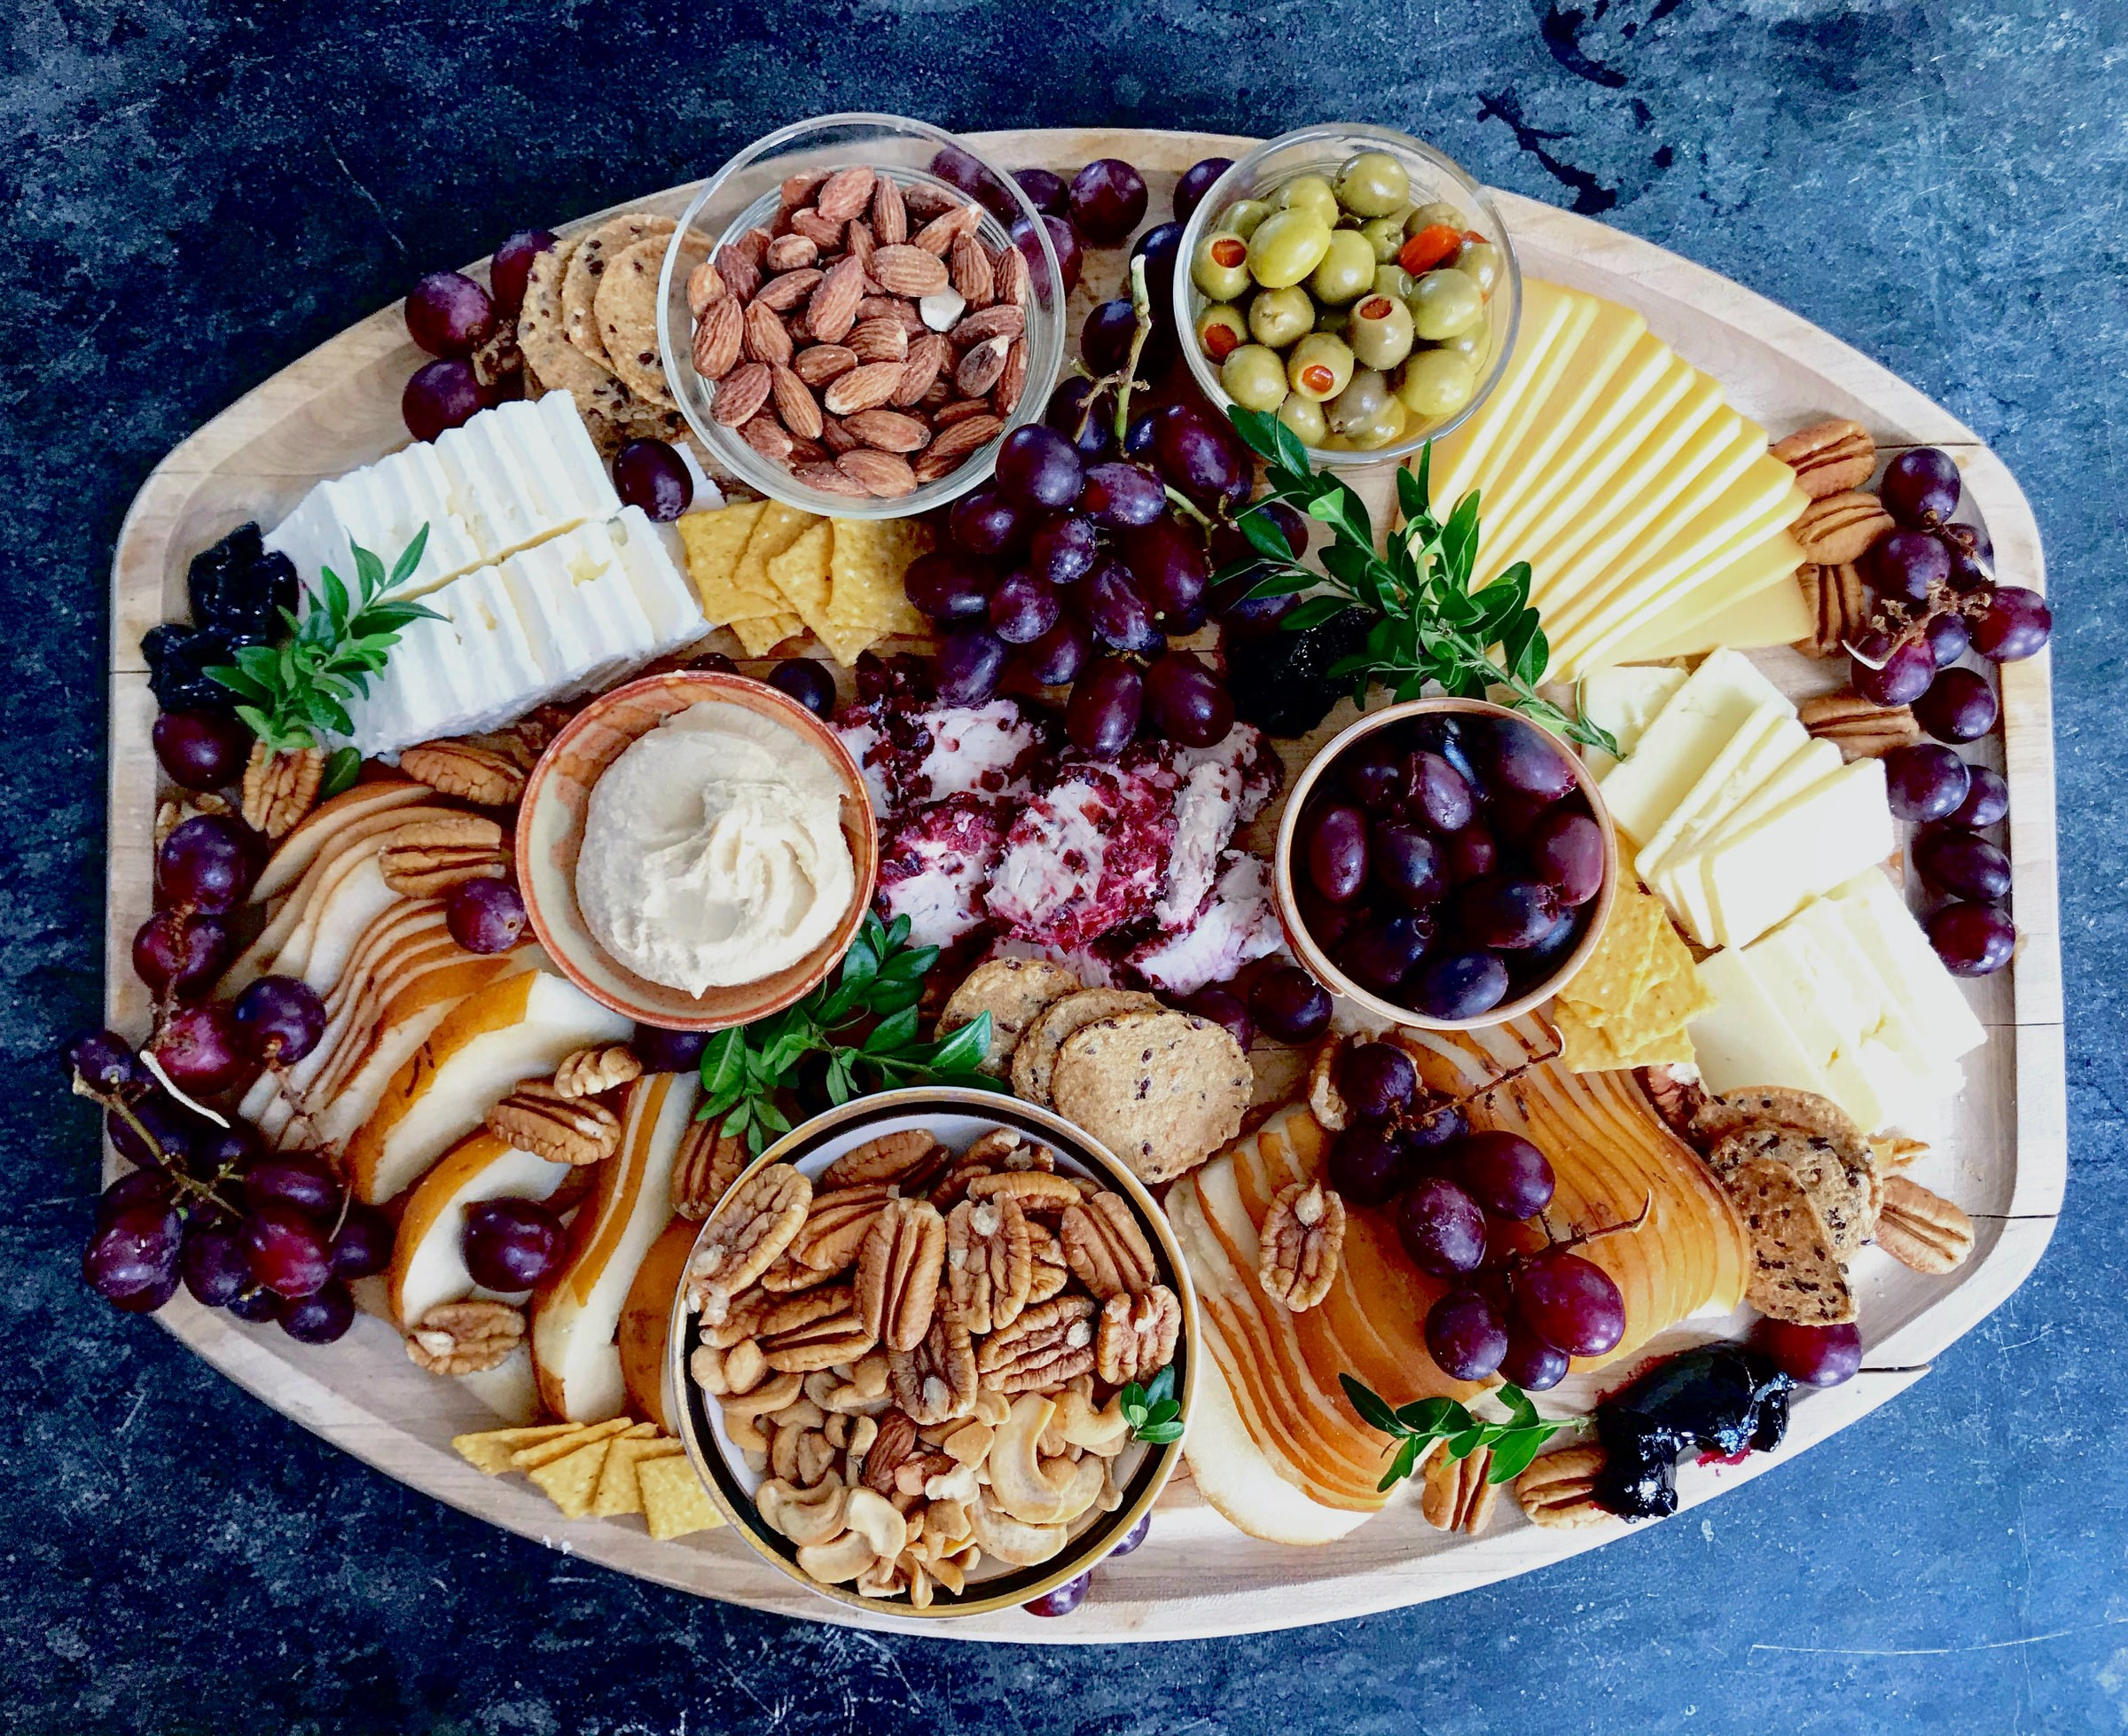 Food platter with cheese, olives and crackers